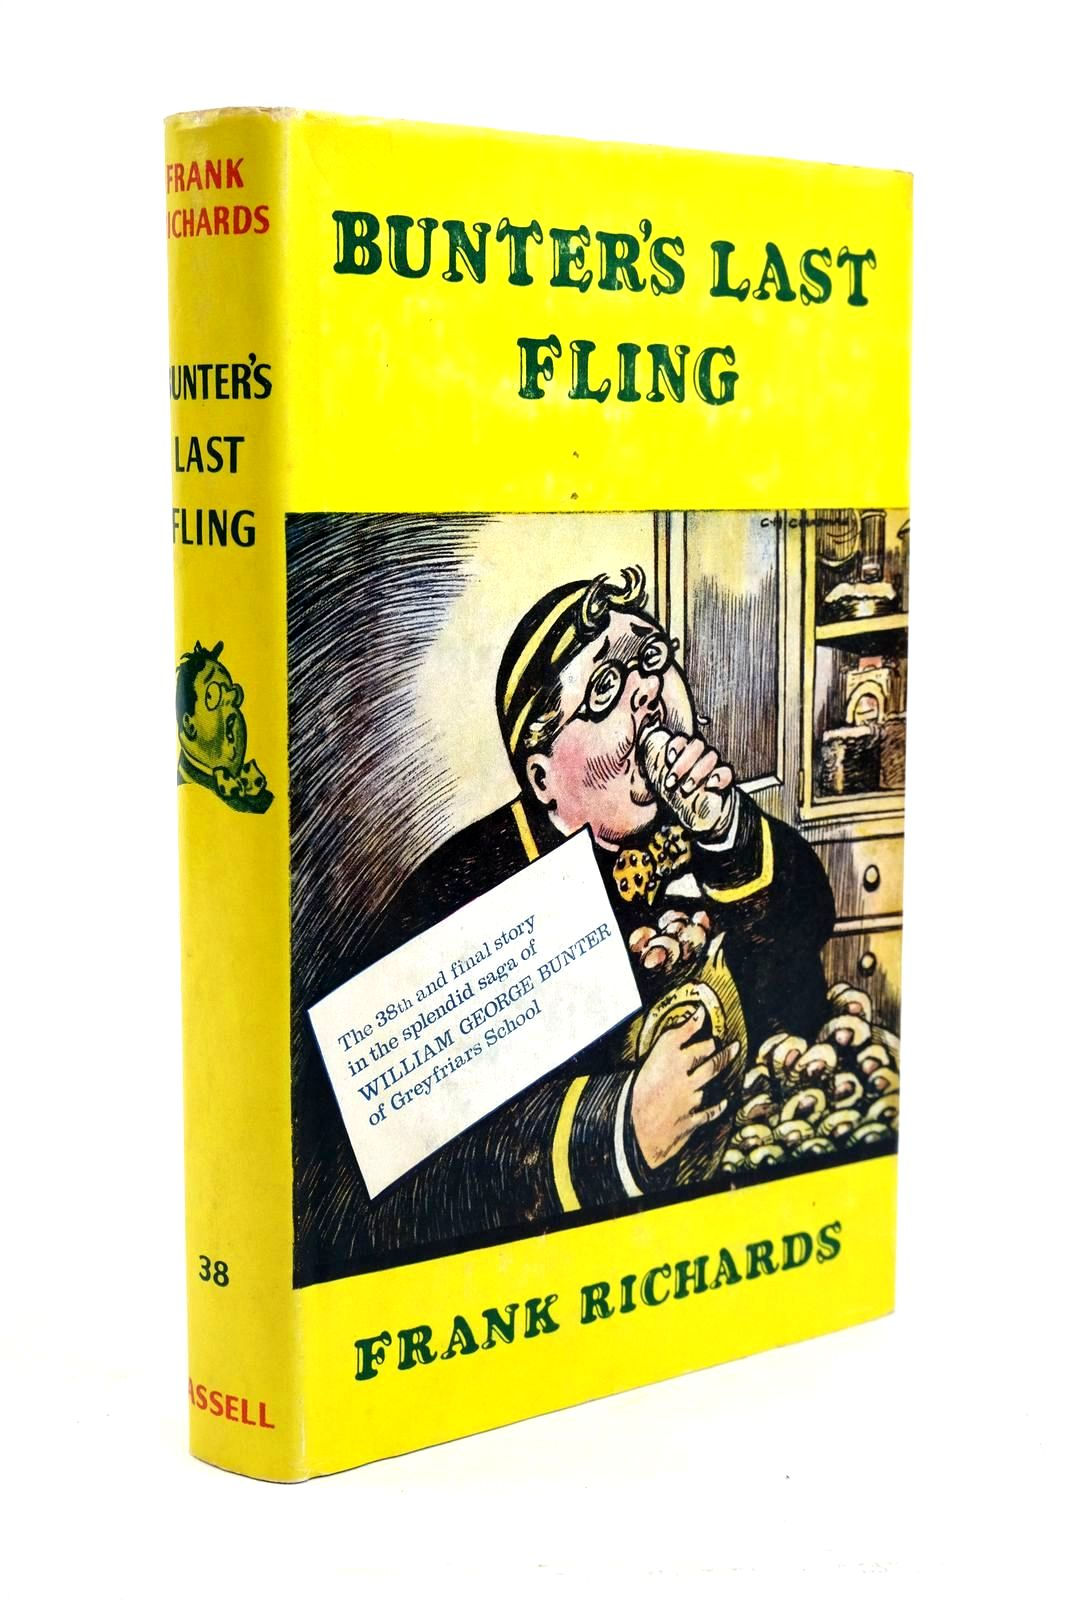 Photo of BUNTER'S LAST FLING written by Richards, Frank illustrated by Chapman, C.H. published by Cassell (STOCK CODE: 1321650)  for sale by Stella & Rose's Books